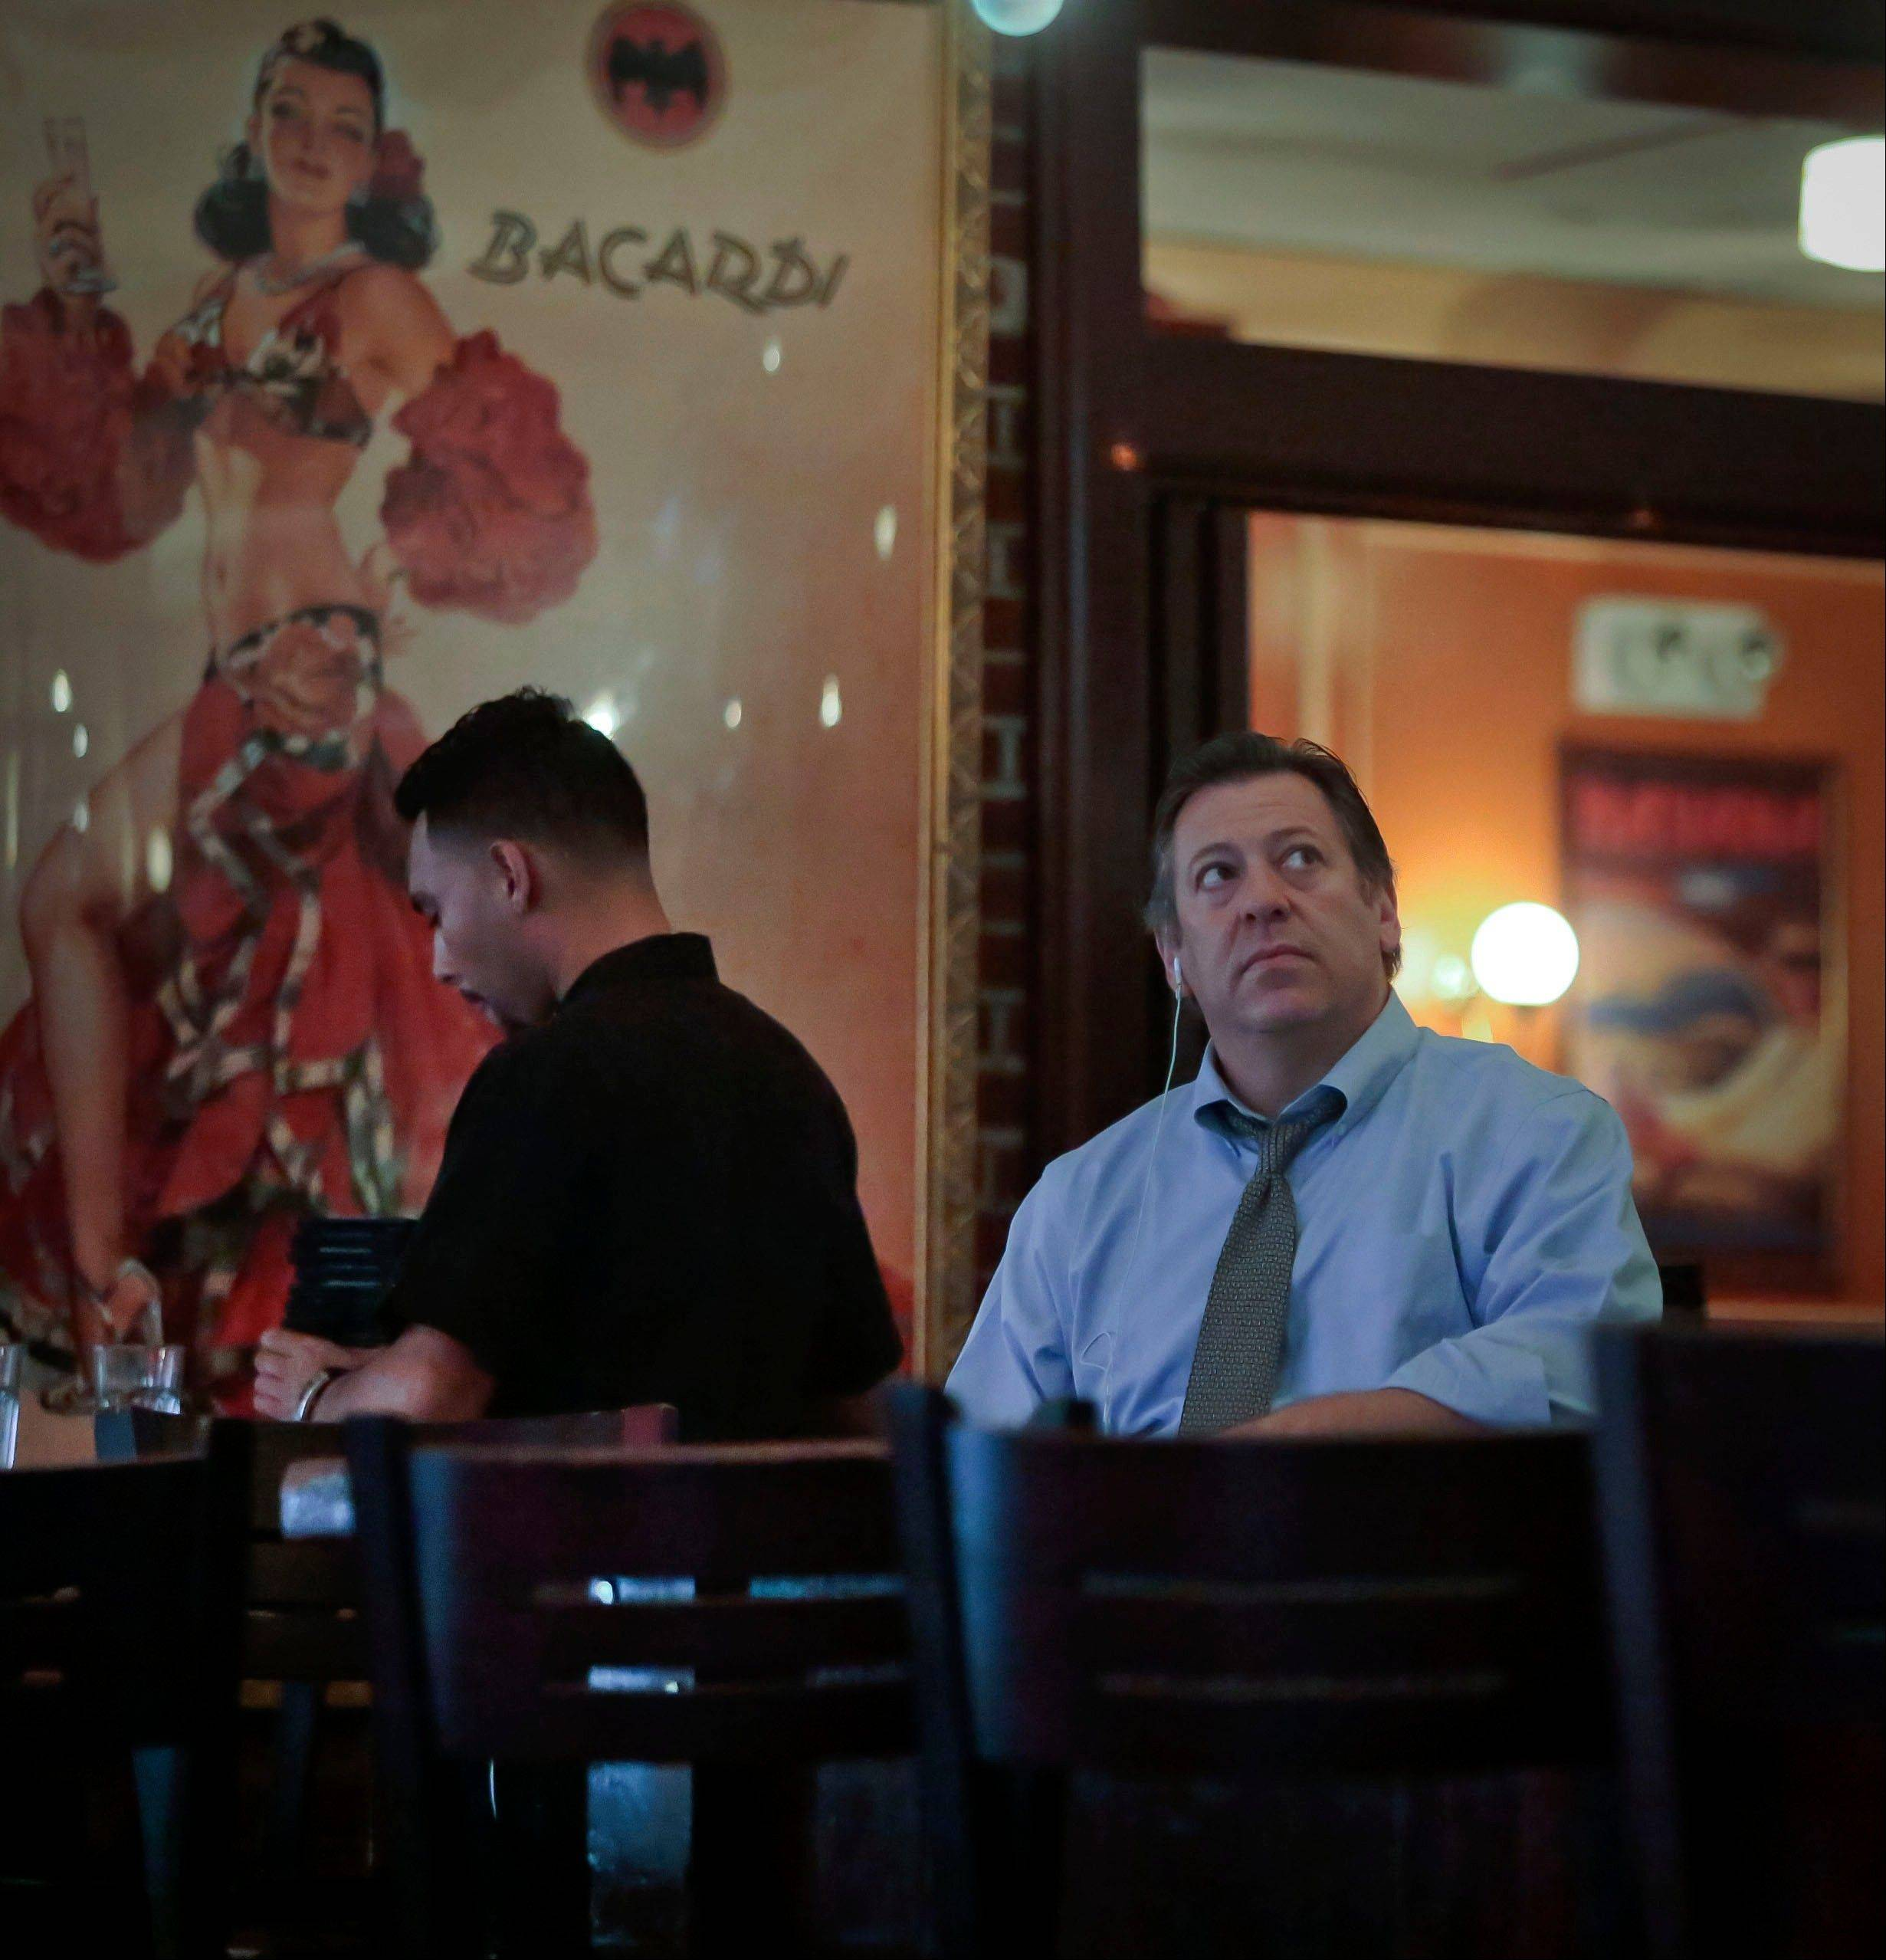 In this Thursday, Aug. 8, 2013, photo, Jeremy Merrin, right, owner of Havana Central restaurants, reacts to a television nearby as a worker prepares for customes to arrive in New York. Merrin said that while he supports healthcare reform, the current changes under President Obama will hurt small businesses like his.